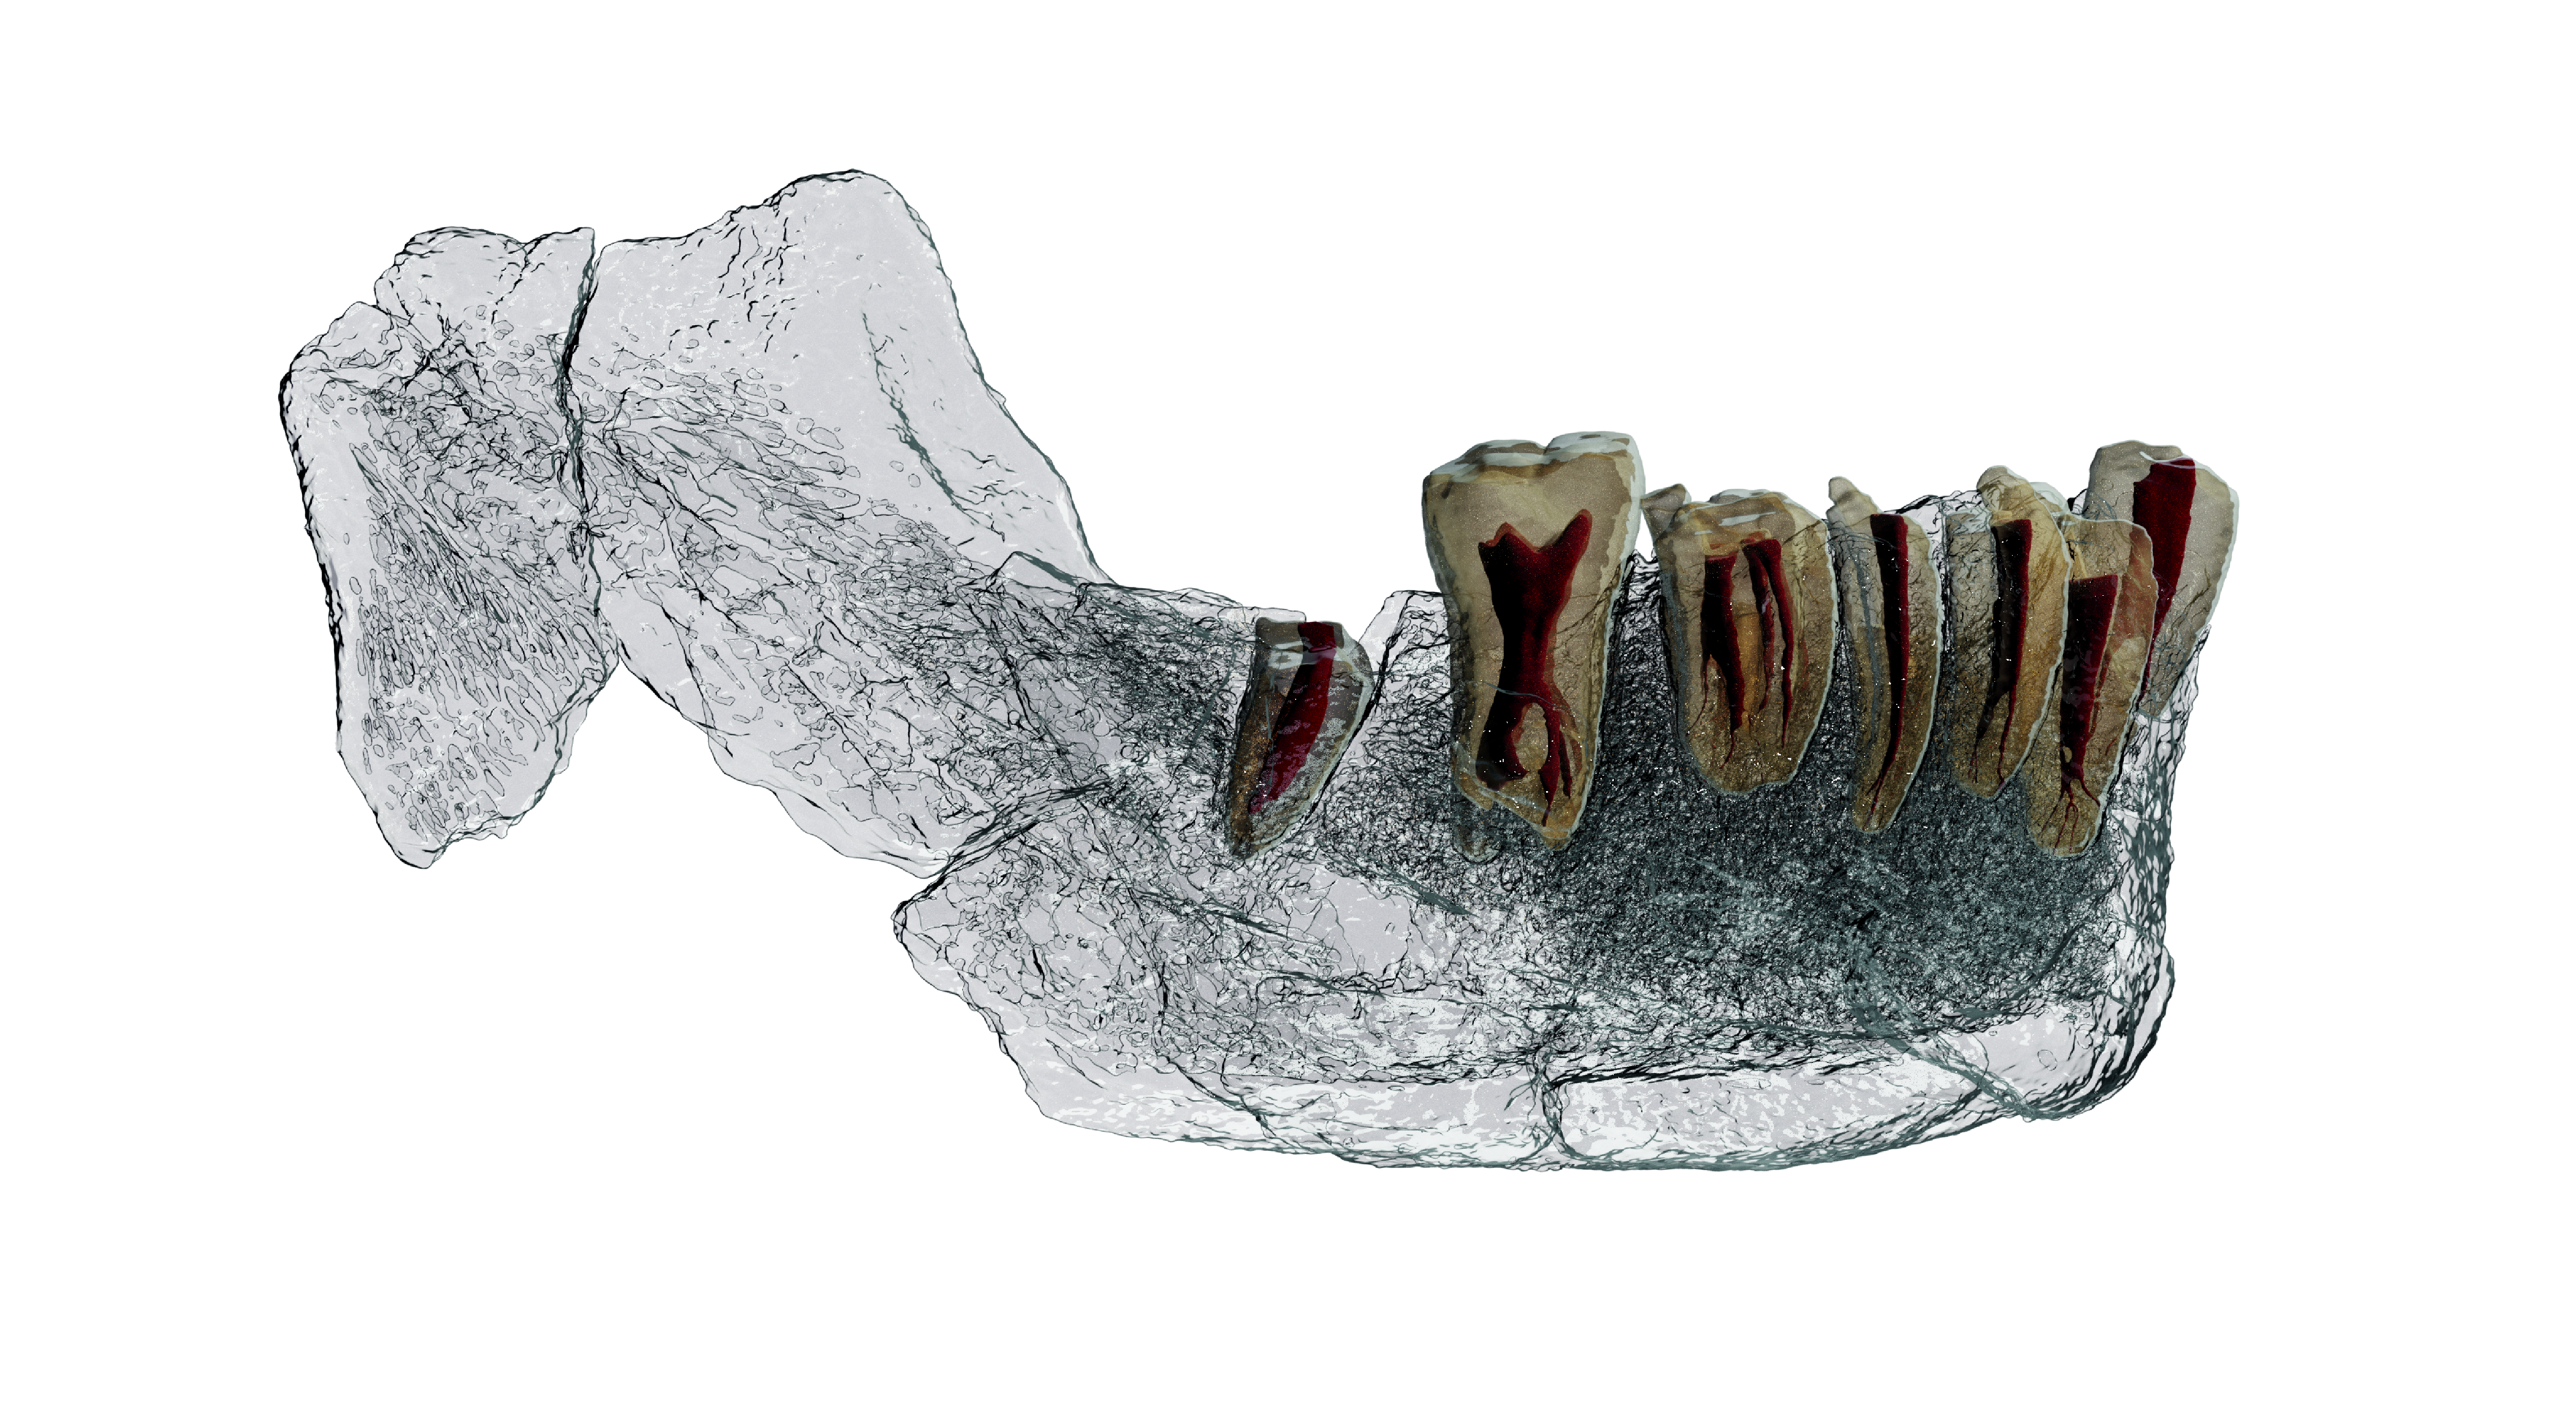 Imaging also captured the internal features of the jaw.